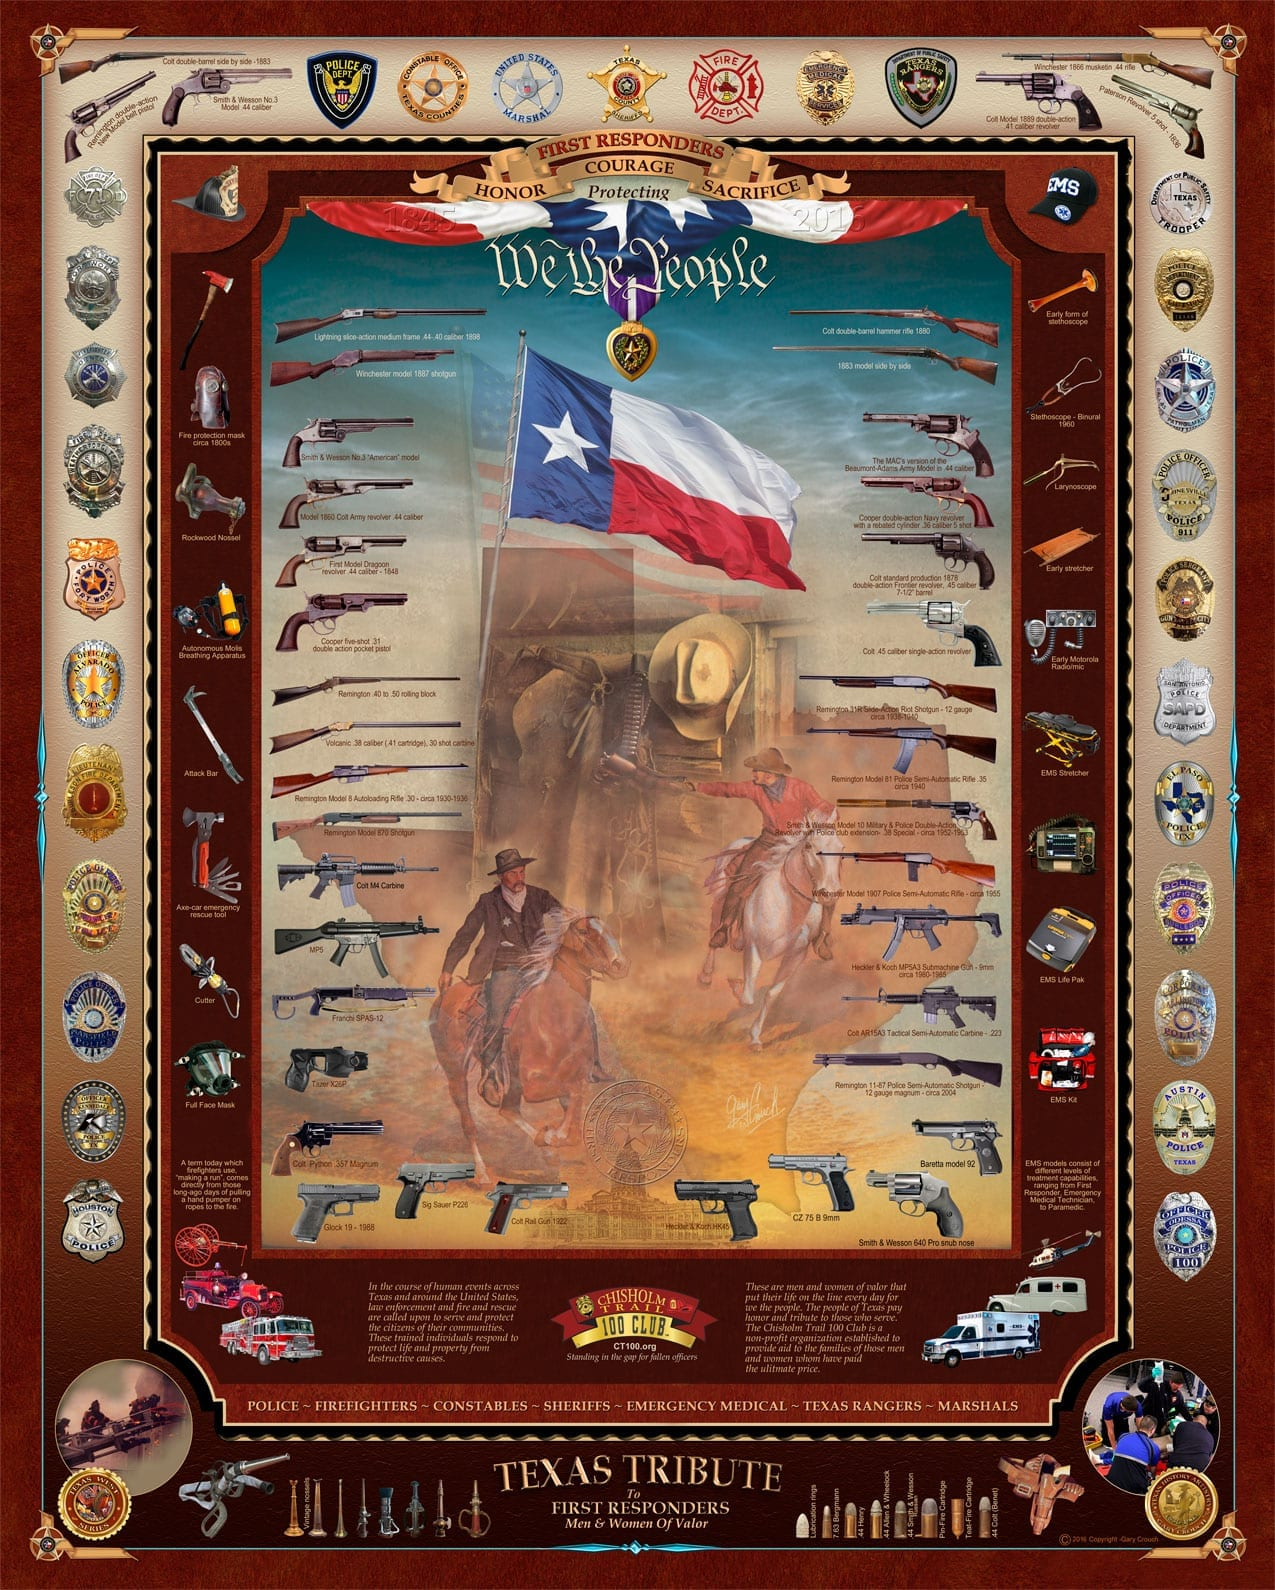 TexasTribute to First Responders 24x30